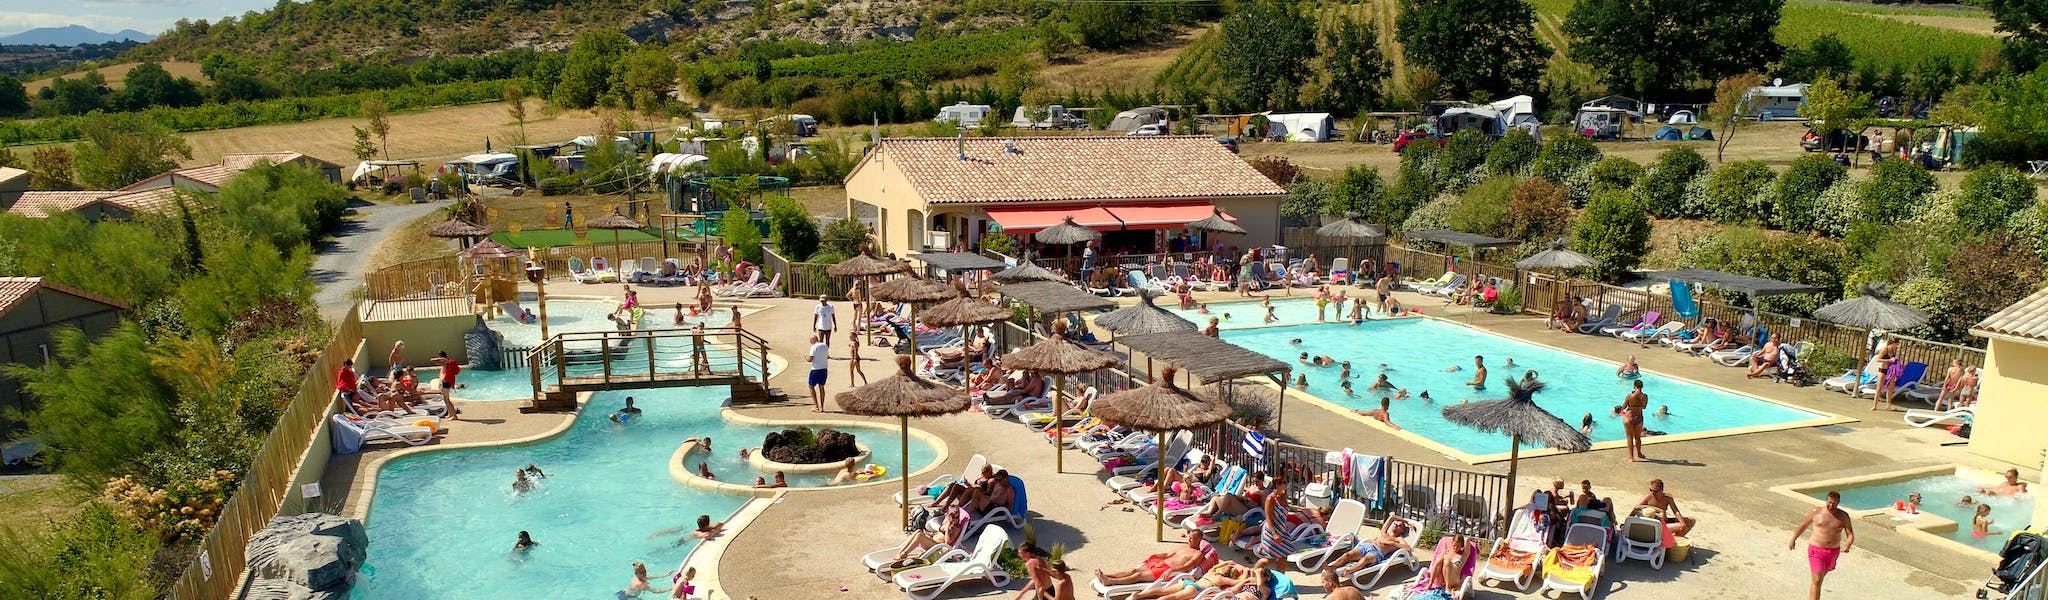 Camping les Arches - buitenzwembad